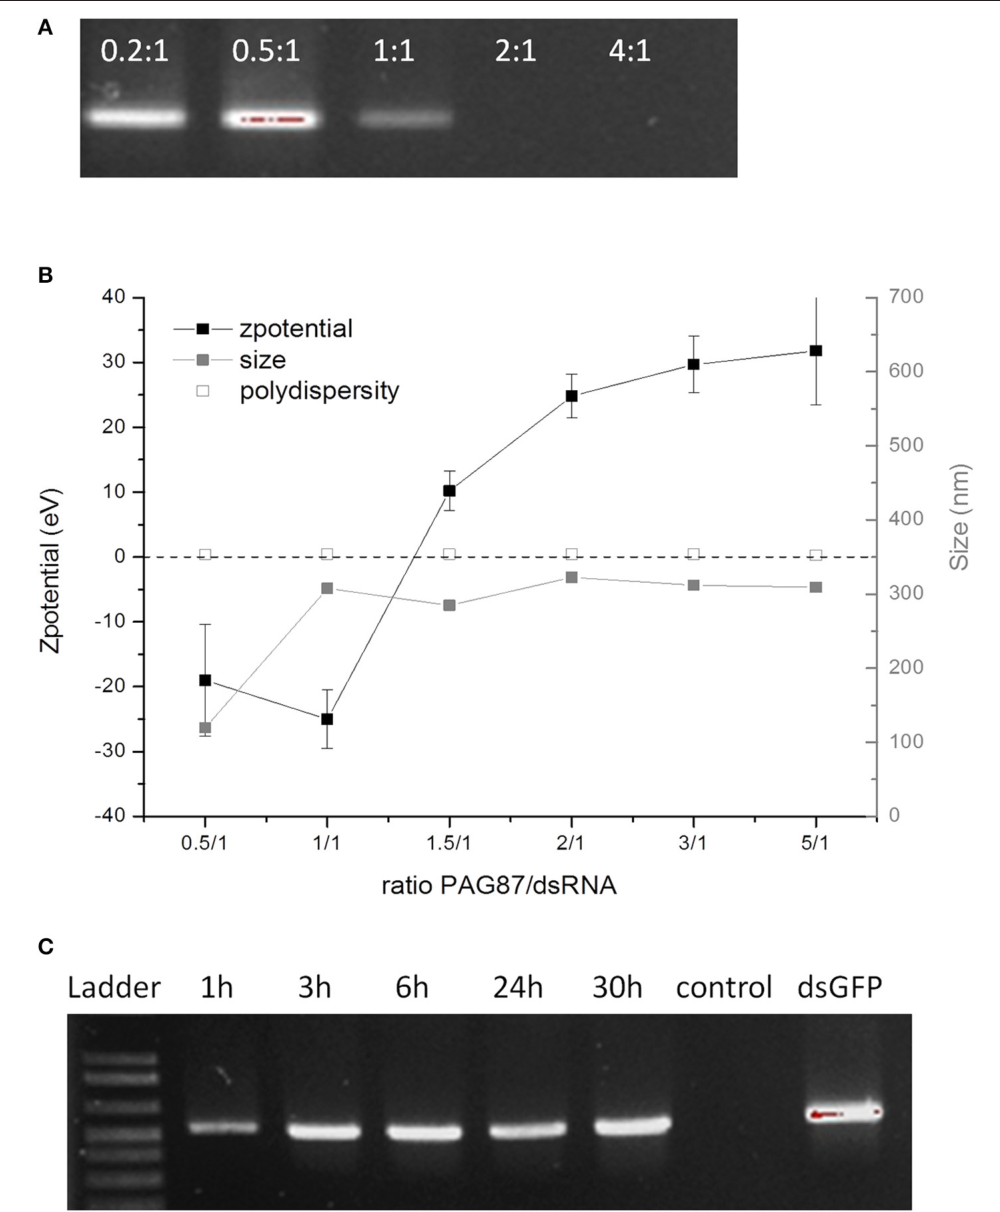 FIGURE 2   Characterization of activity of PAG87L and ability to protect dsRNA against nucleolytic degradation. (A) Complexation of the polymer with the dsRNA at different polymer:dsRNA charge ratios (0.2:1, 0.5:1, 1:1, 2:1, and 4:1) (B) Zeta-potential and size of the polyplex for different polymer:dsRNA charge ratios. (C) DsRNA polyplexes were incubated in collected gut juice for different time periods (1–30 h) to investigate the stability of the dsRNA when complexed with the polymer. The control represents naked dsRNA incubated in the gut juice for 1 h.